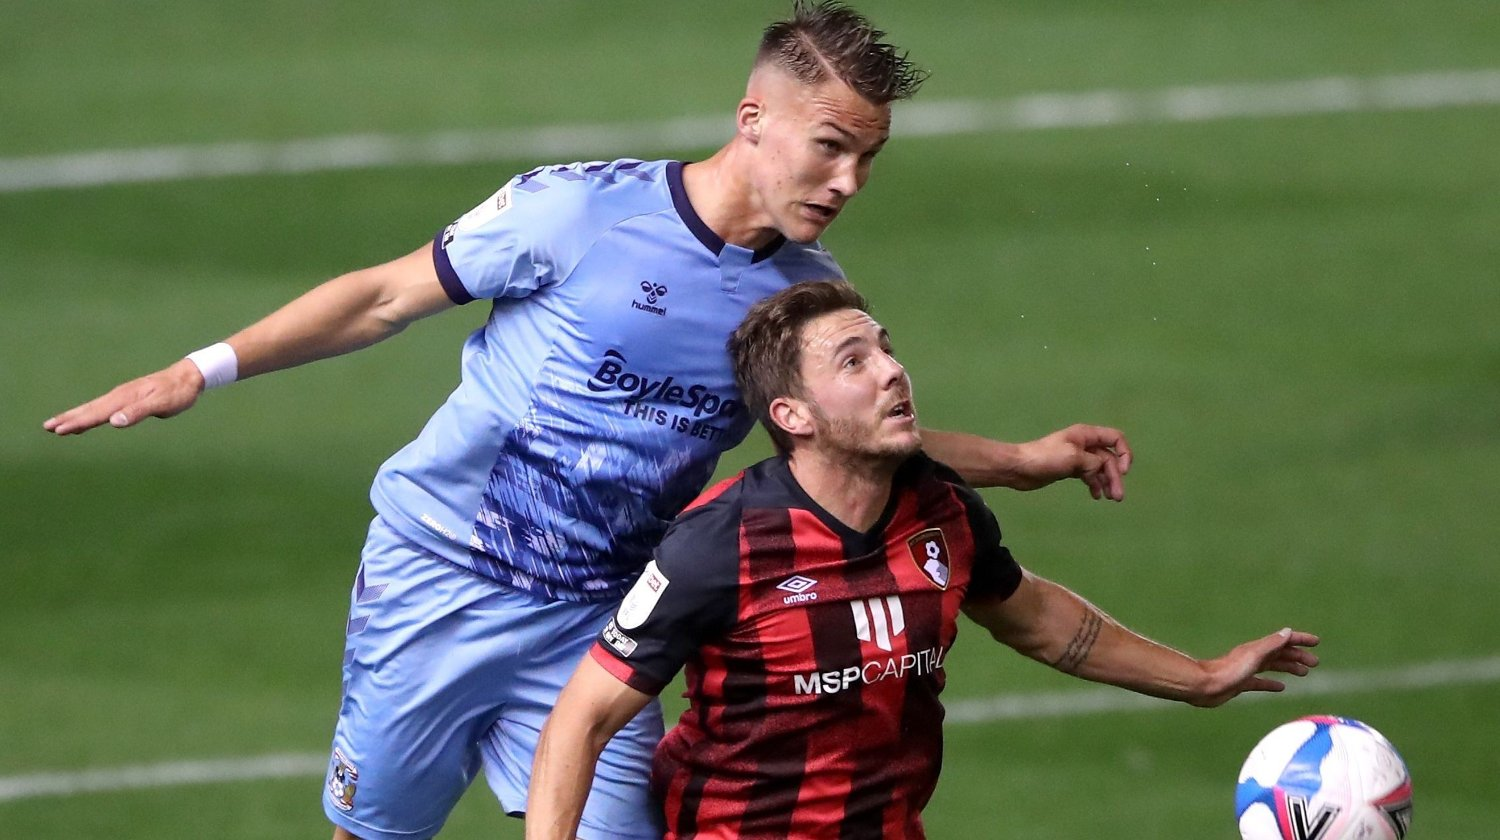 Coventry City's Leo Ostigard and AFC Bournemouth's Dan Gosling battle for the ball during the Sky Bet Championship match at St Andrew's Trillion Trophy Stadium, Birmingham.